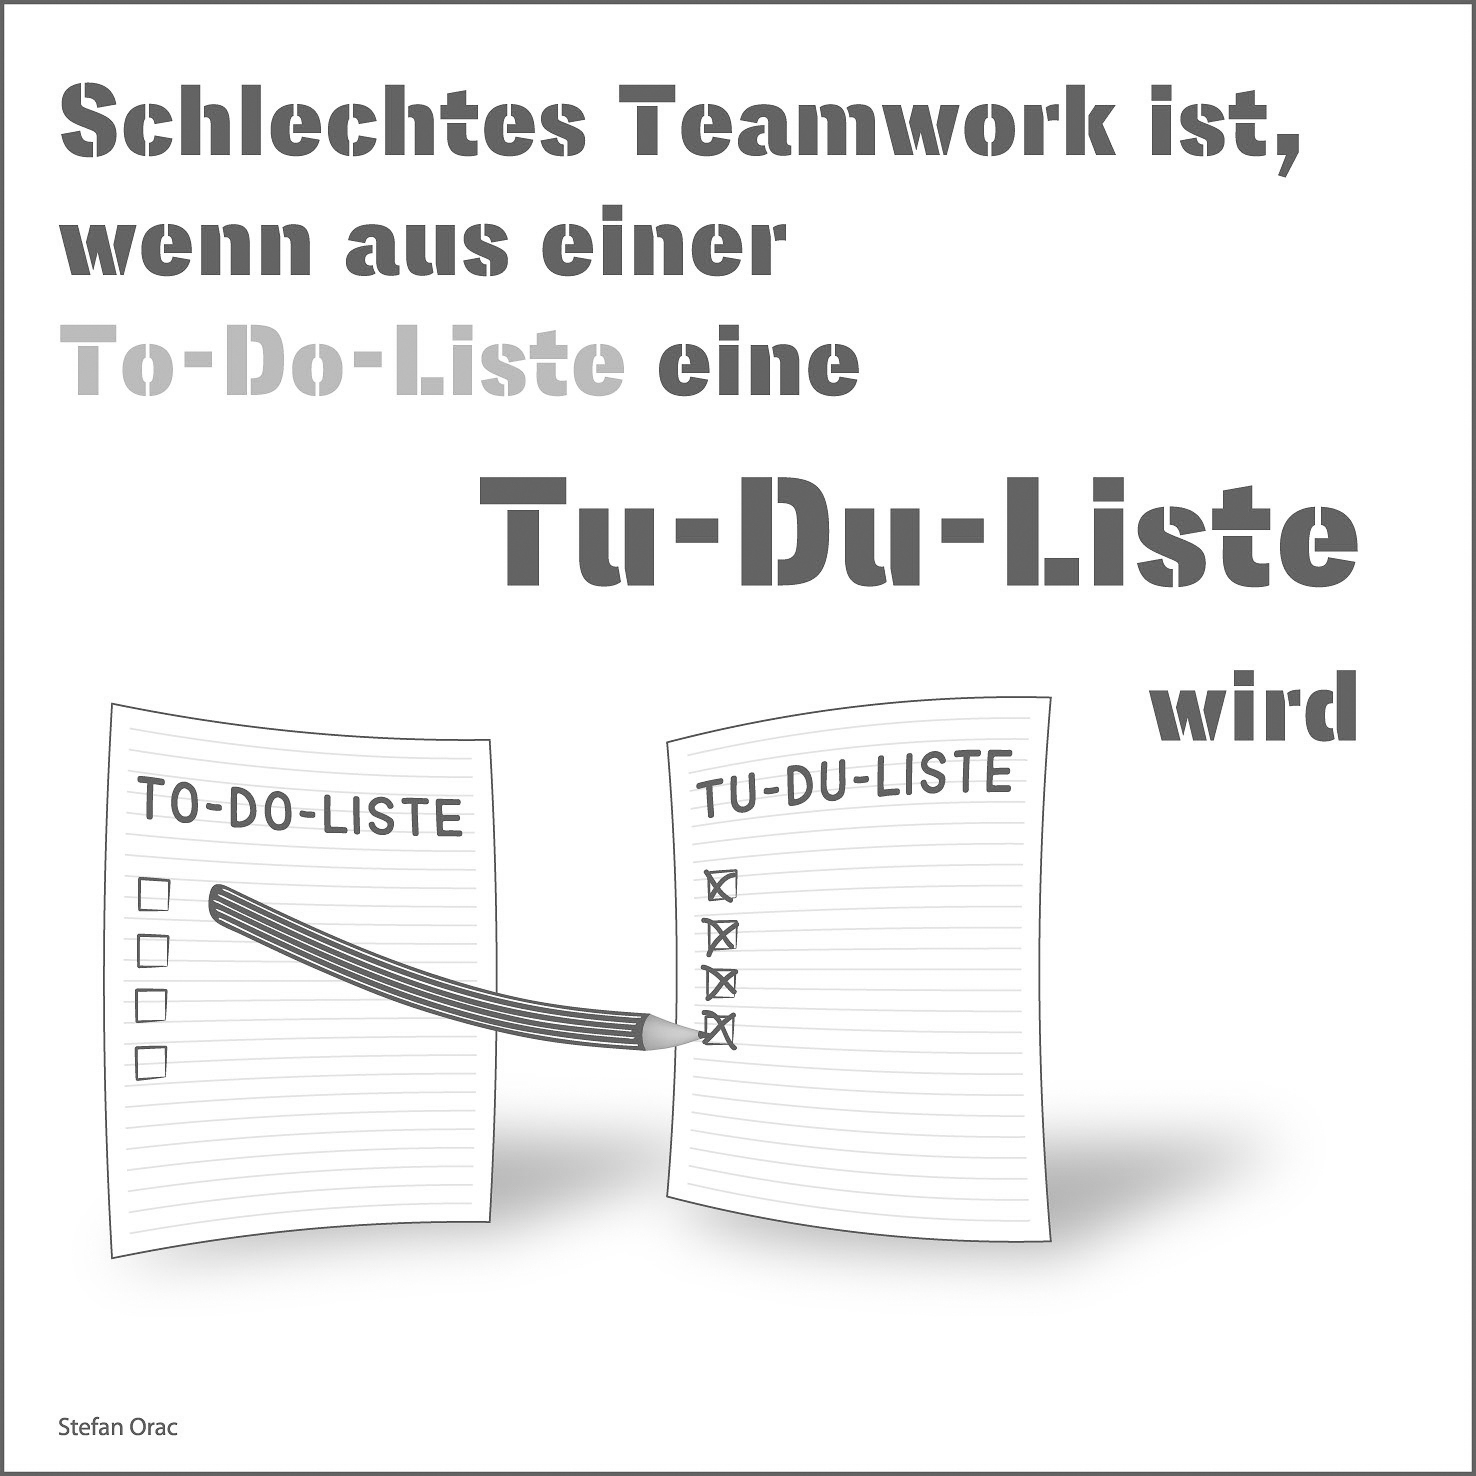 Schlechtes Teamwork ist,_To-do